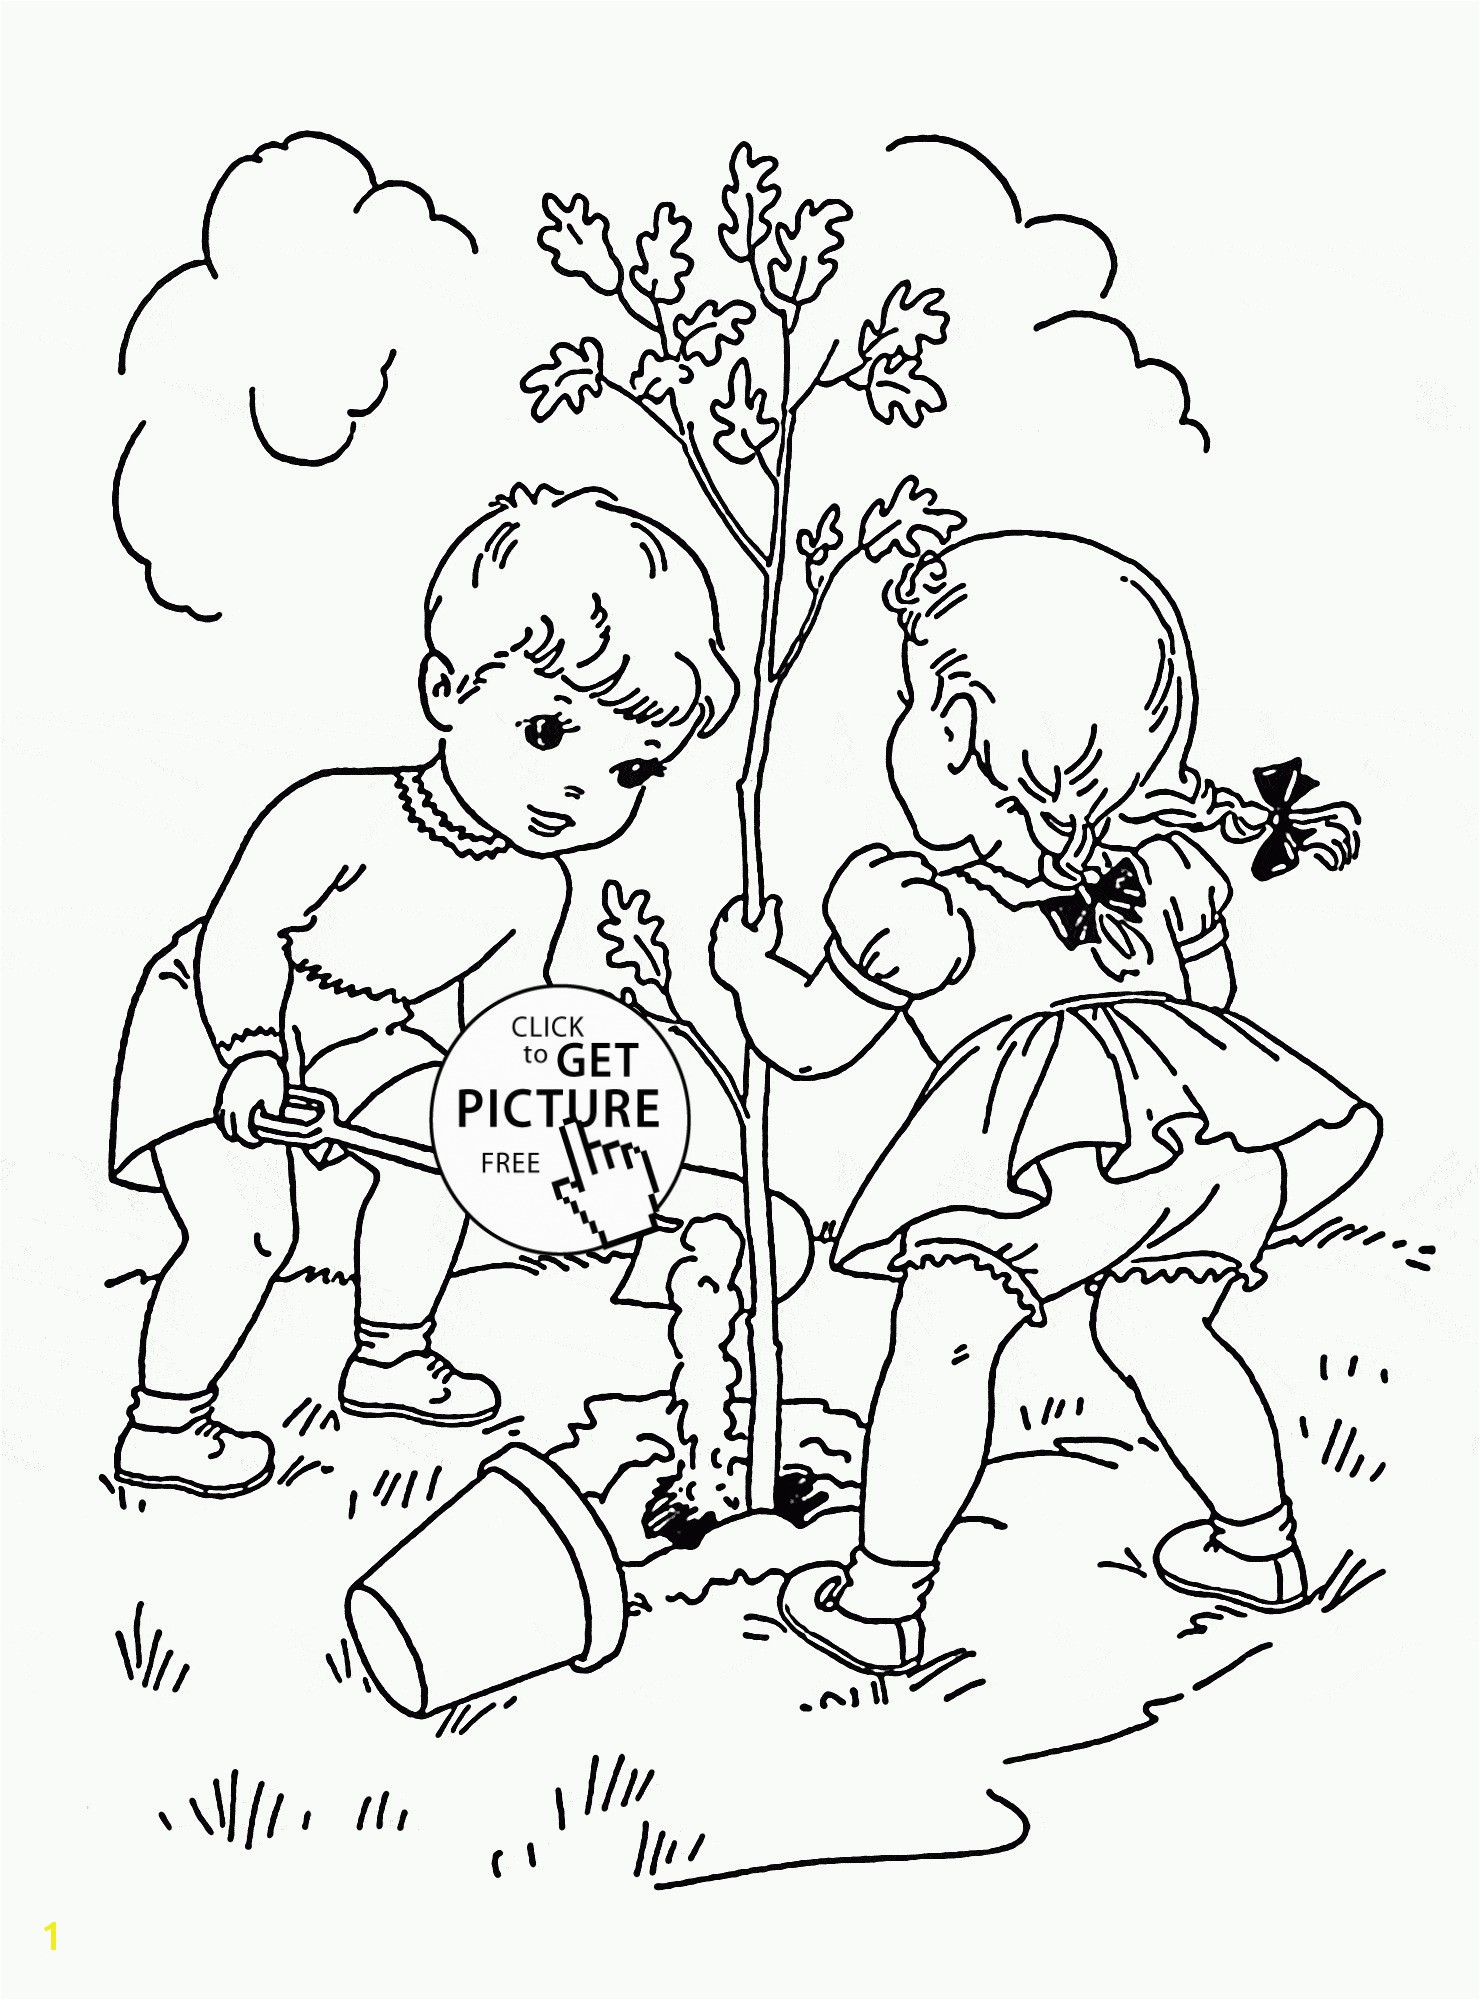 Coloring Pages for Children heathermarxgallery